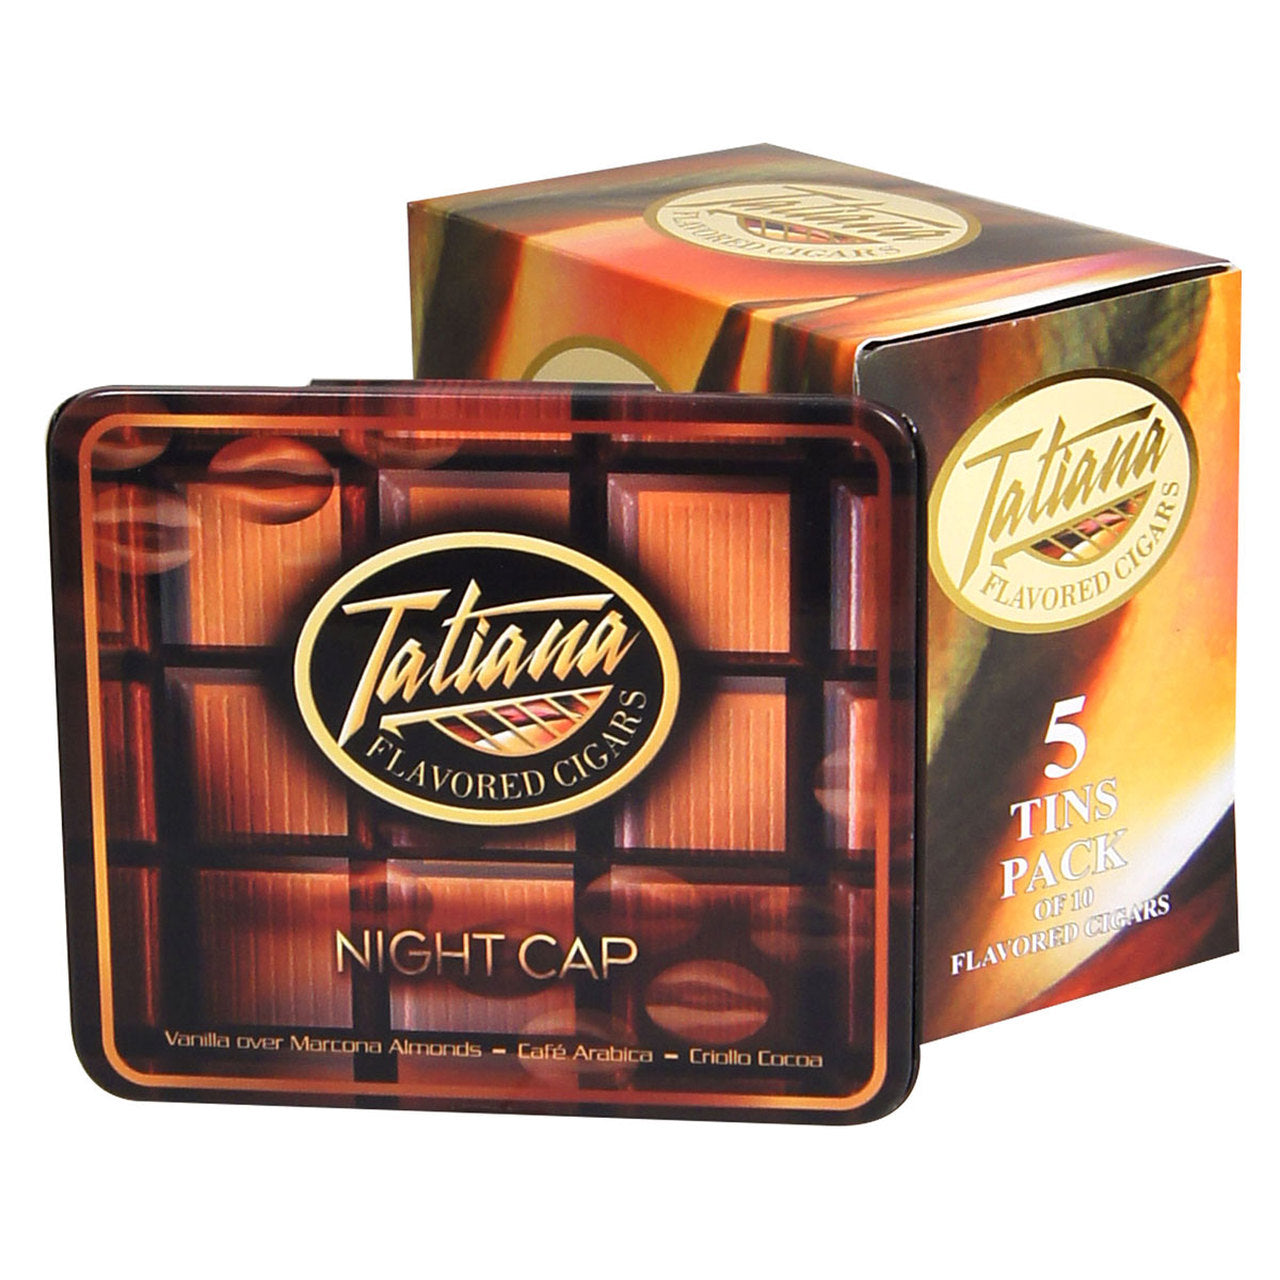 Tatiana Night Cap - Cigar boulevard